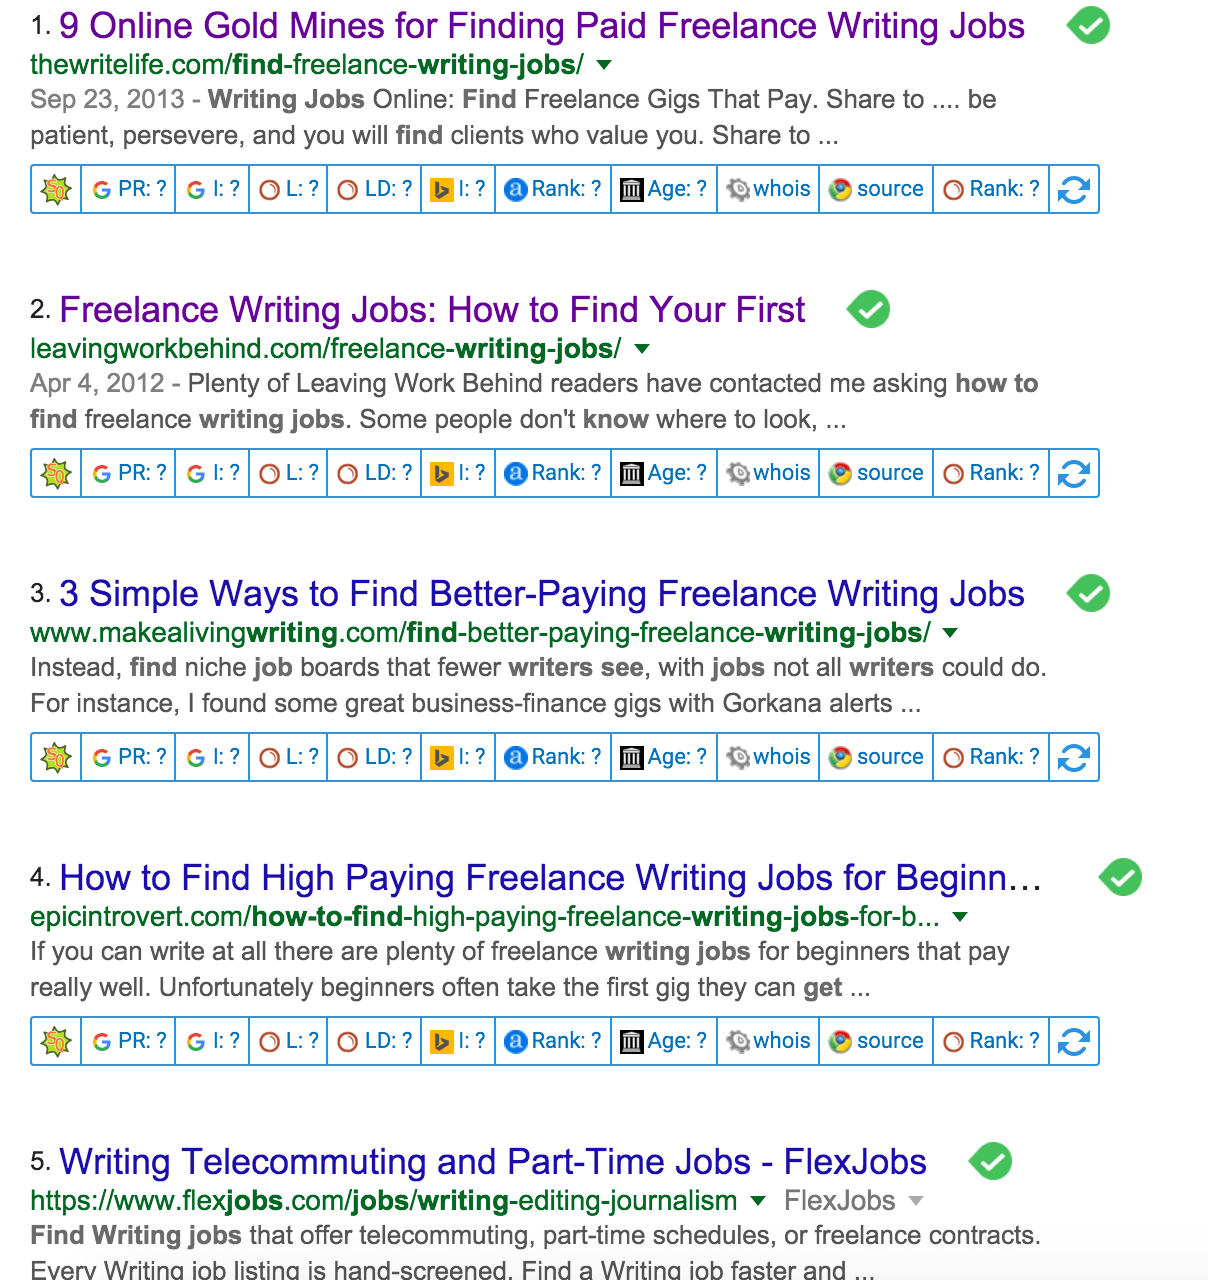 lance jobs that pay well how can i get paid to lance reading   lance jobs that pay well how can i get paid to lance reading 10 online gold mines for finding paid lance writing jobs 5 creative and fun jobs that pay